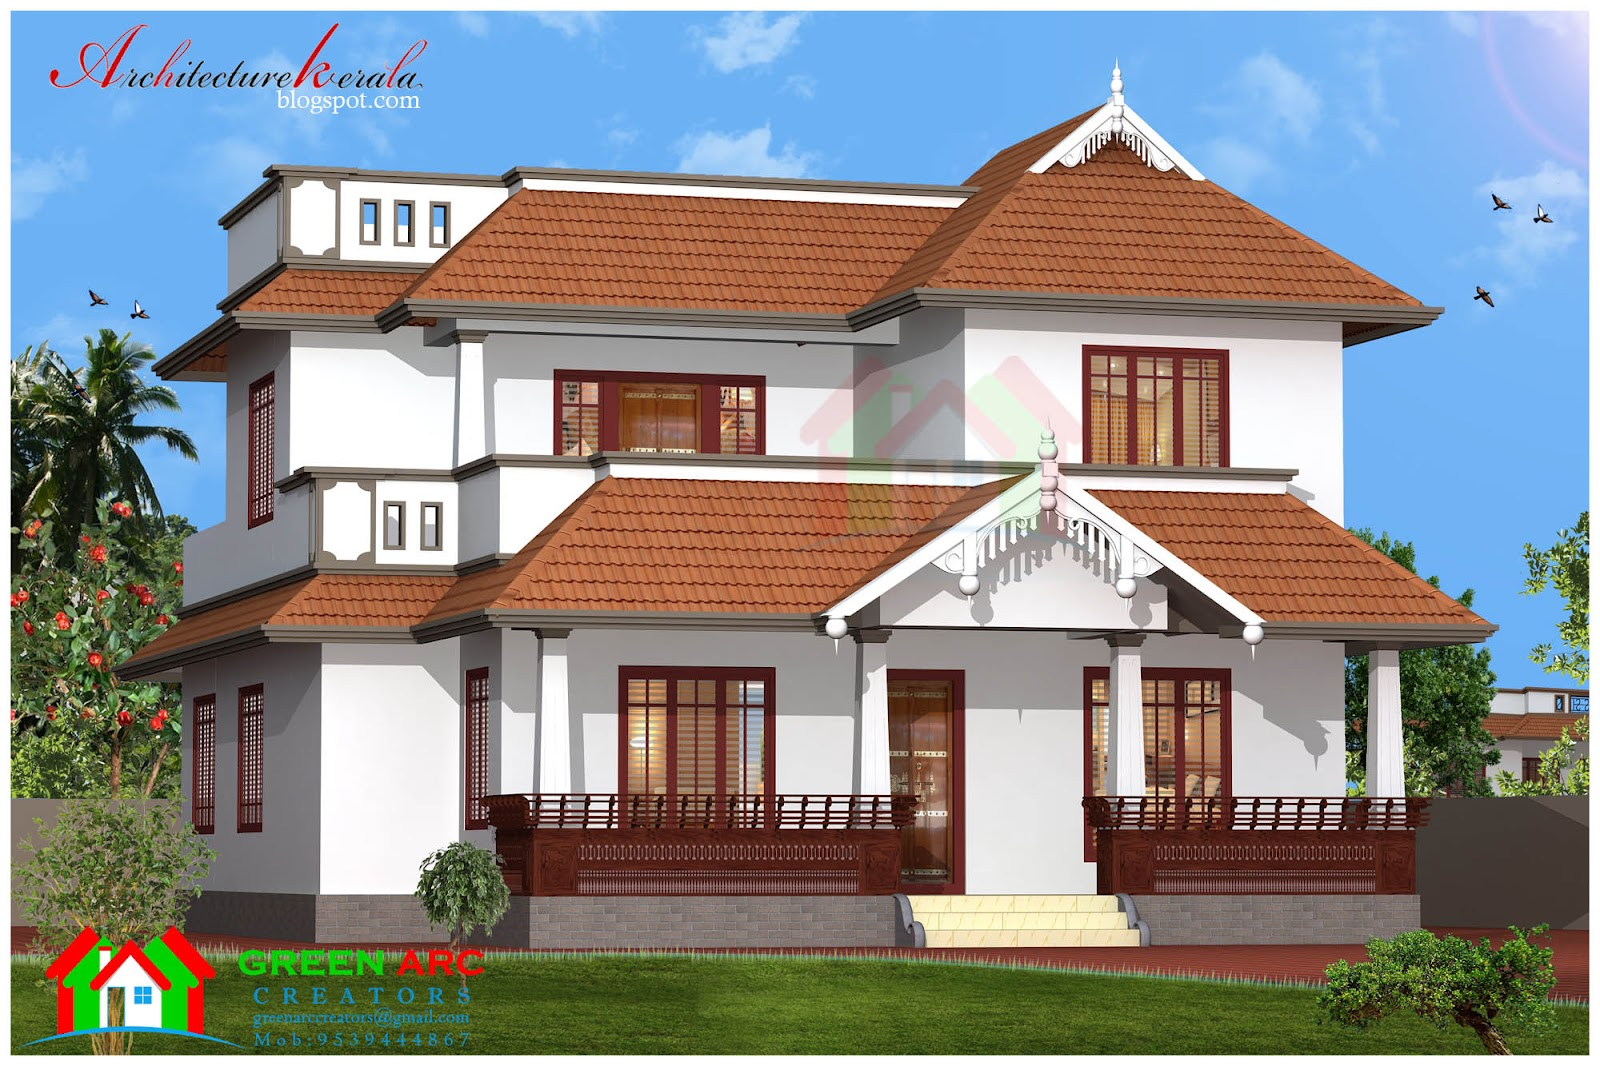 Architecture kerala traditional style kerala house plan for Traditional style house